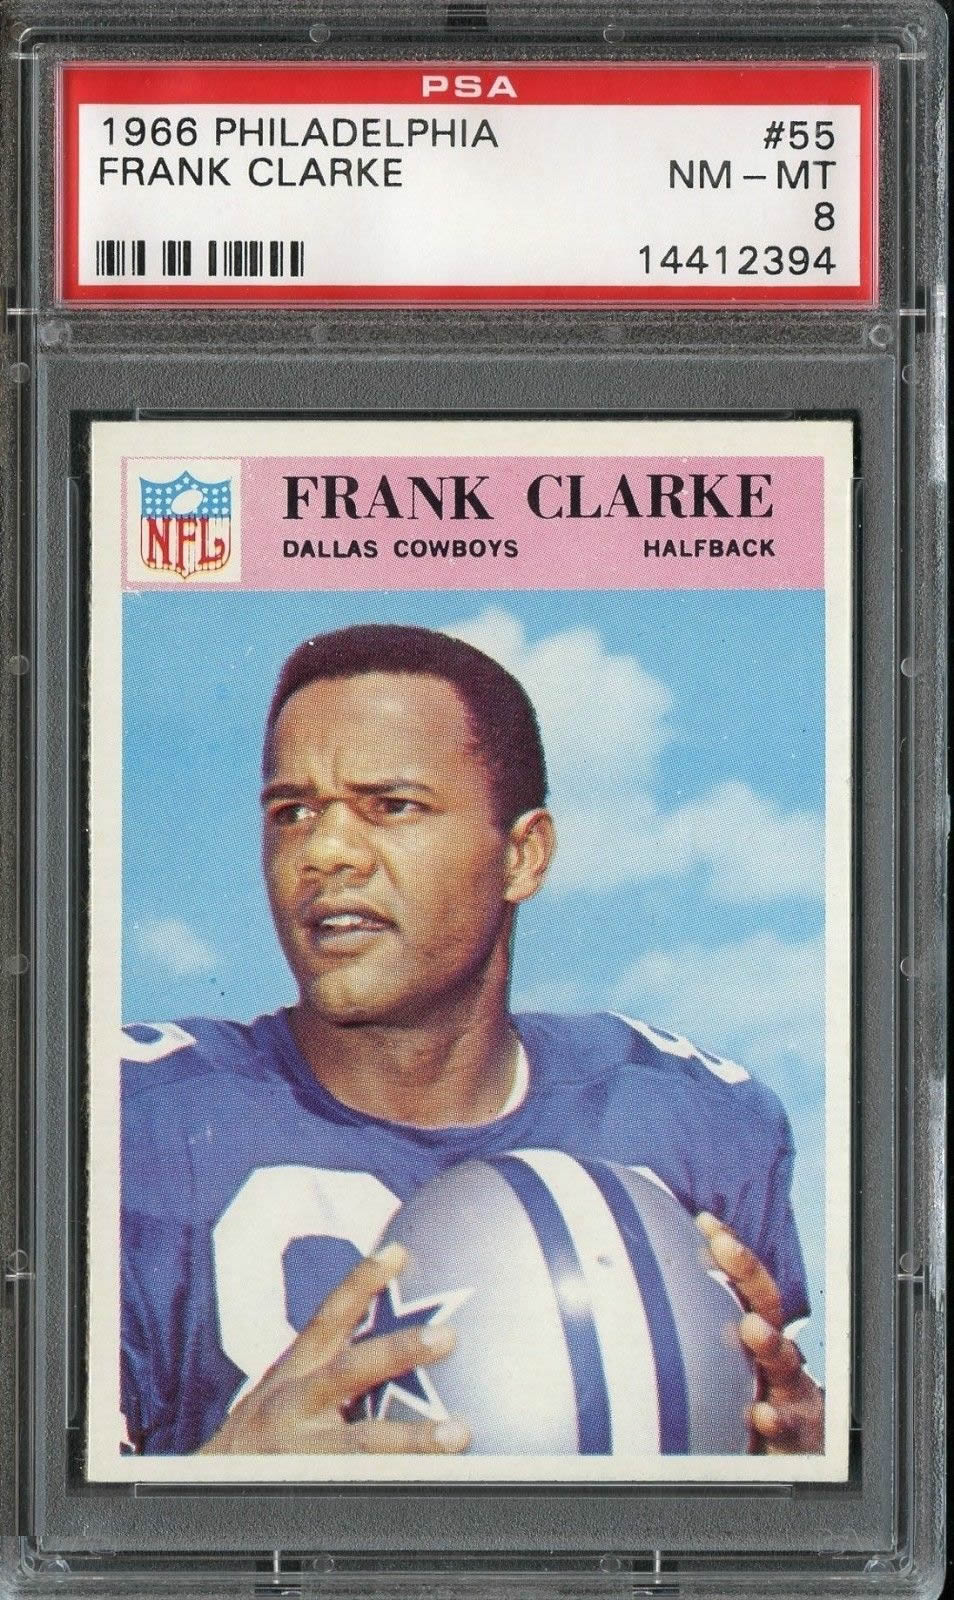 1966 Philadelphia #55 Frank Clarke Dallas Cowboys PSA 8